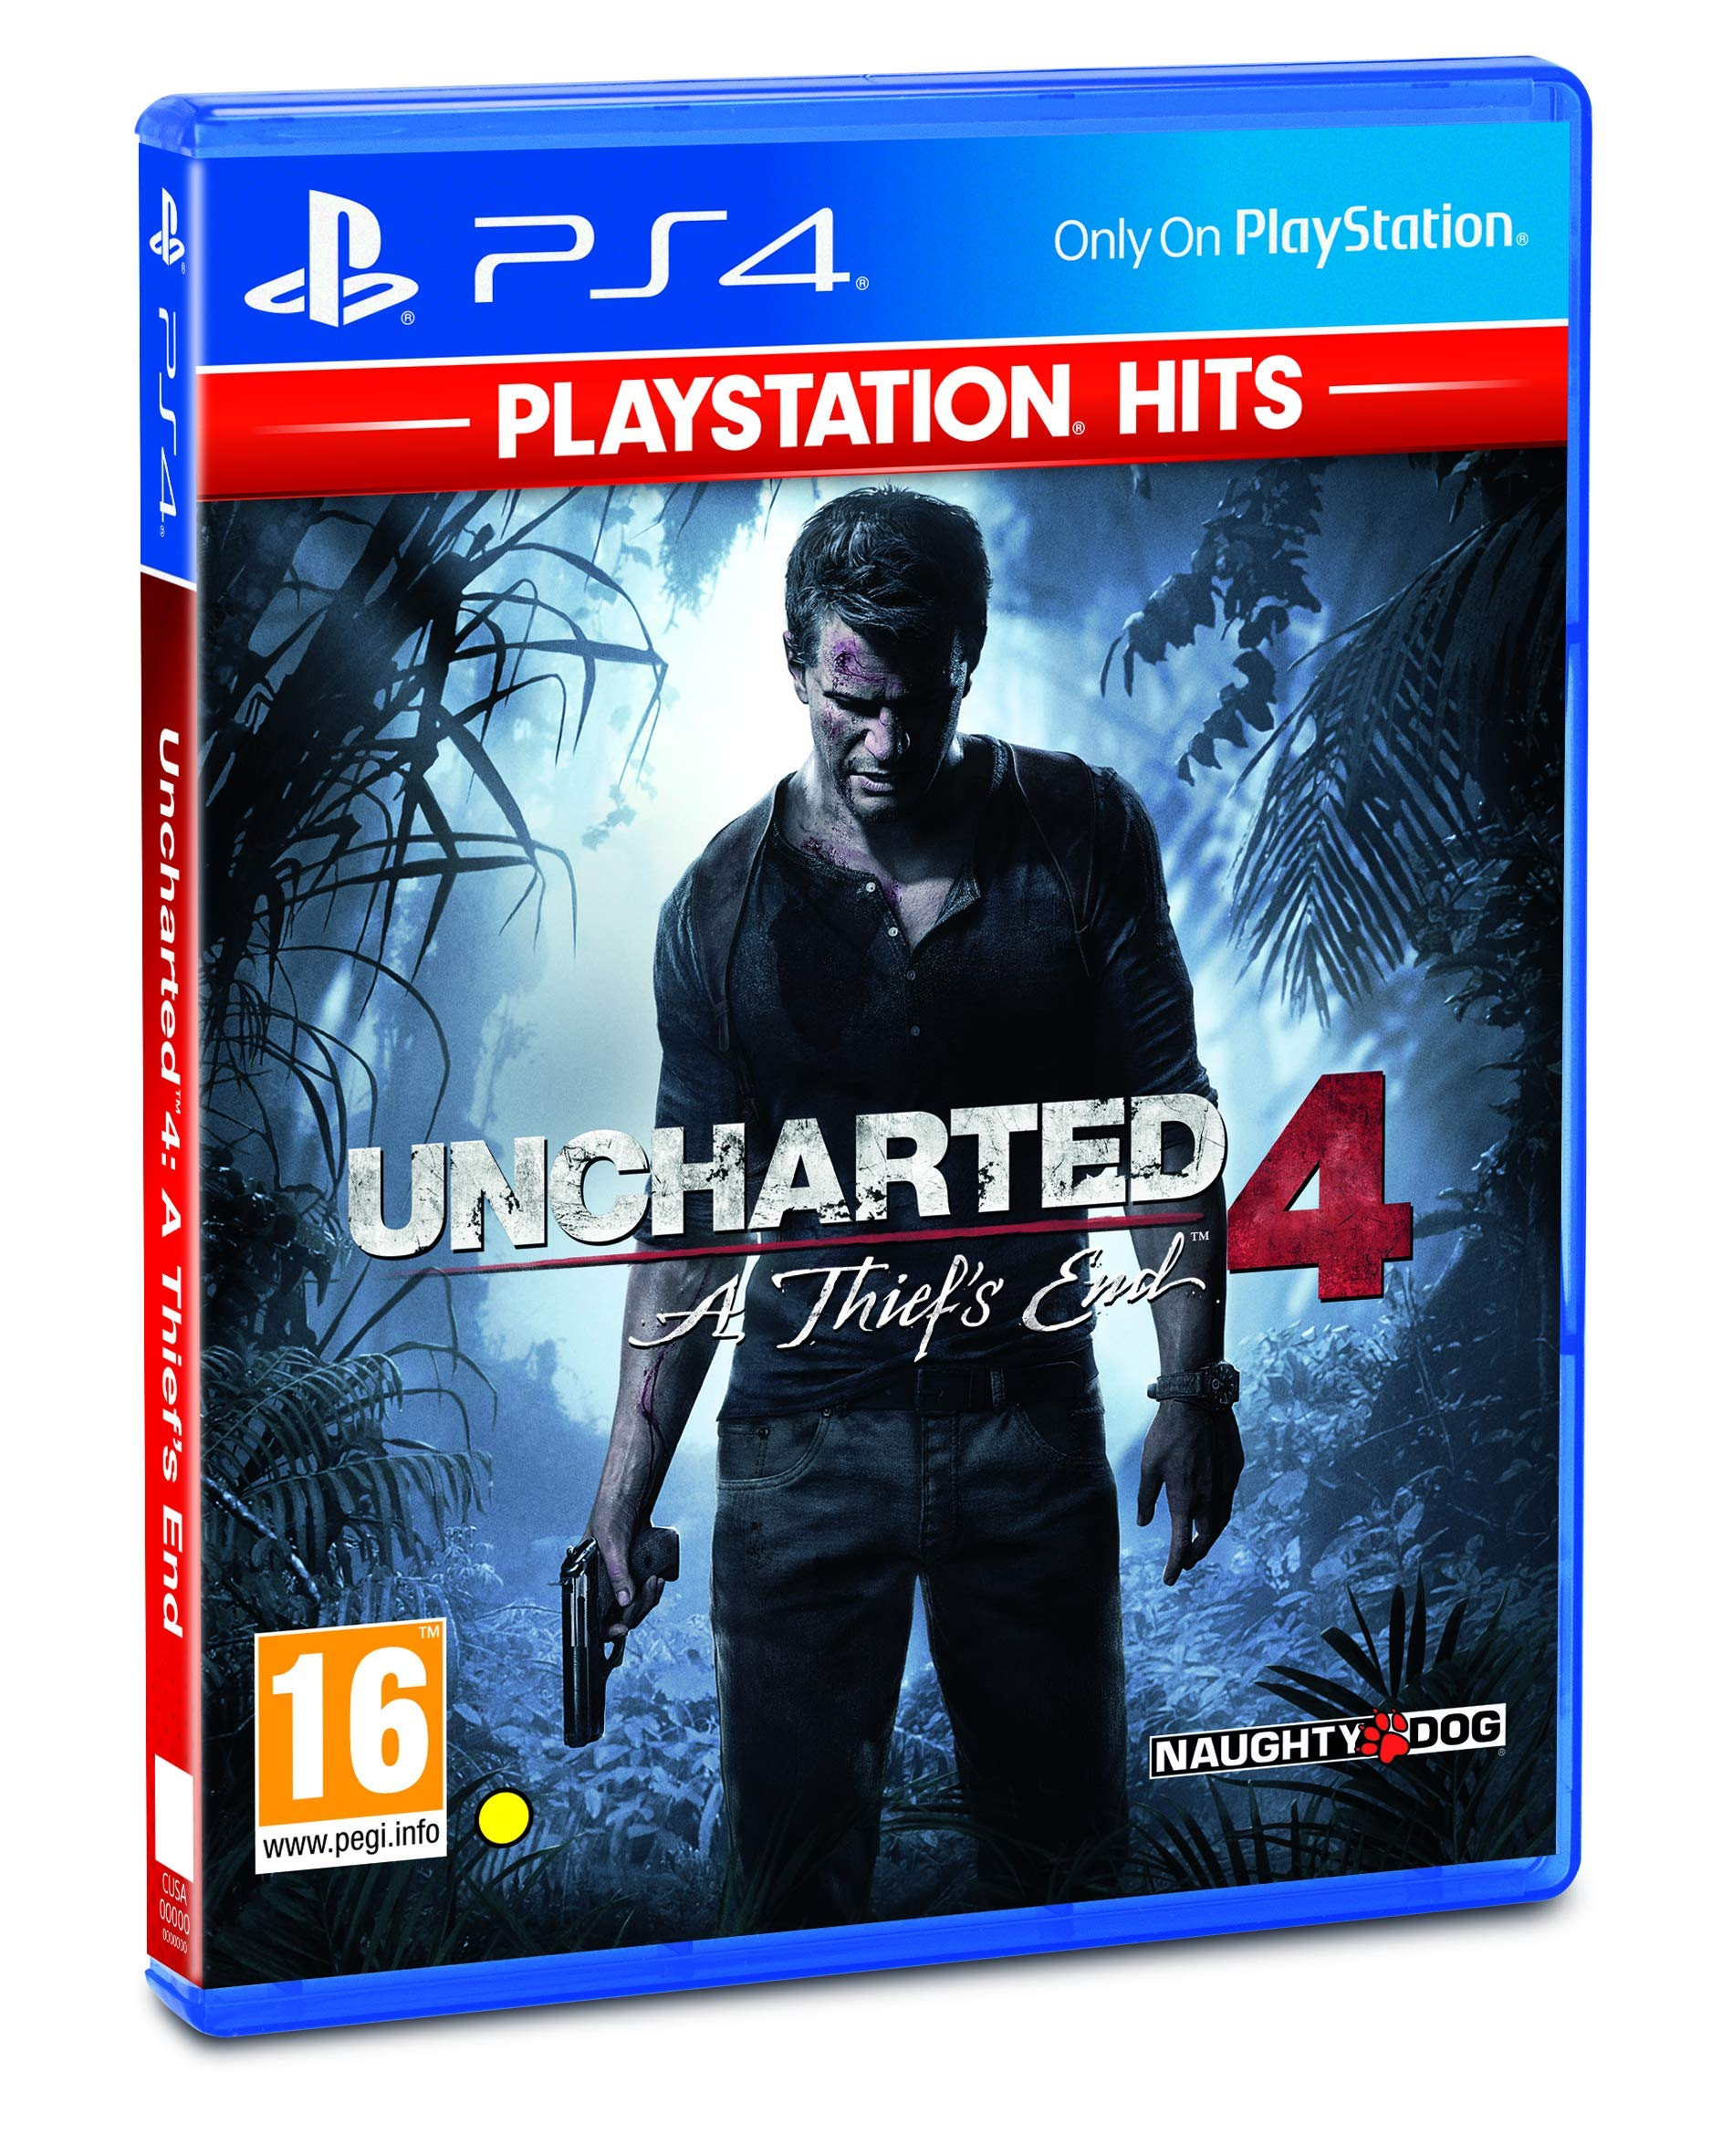 Uncharted 4: A Thief's End  Playstation Hits (PS4) - Newer Version product image